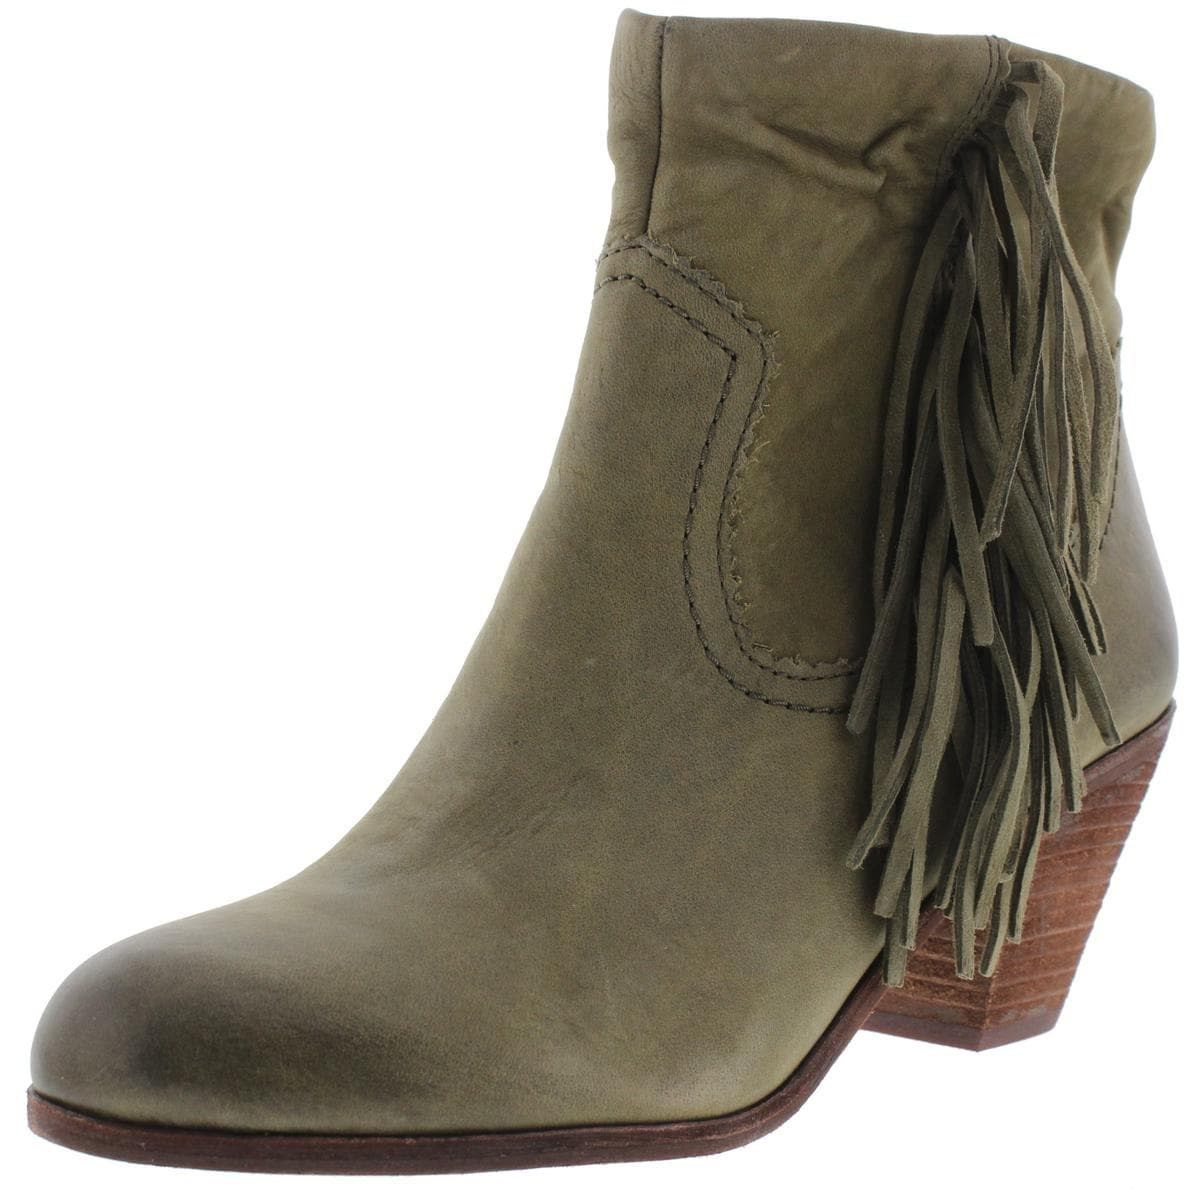 73f9e989c951 Shop Sam Edelman Womens Louie Ankle Boots Fold Over Fringe - Free Shipping  Today - Overstock - 13688942